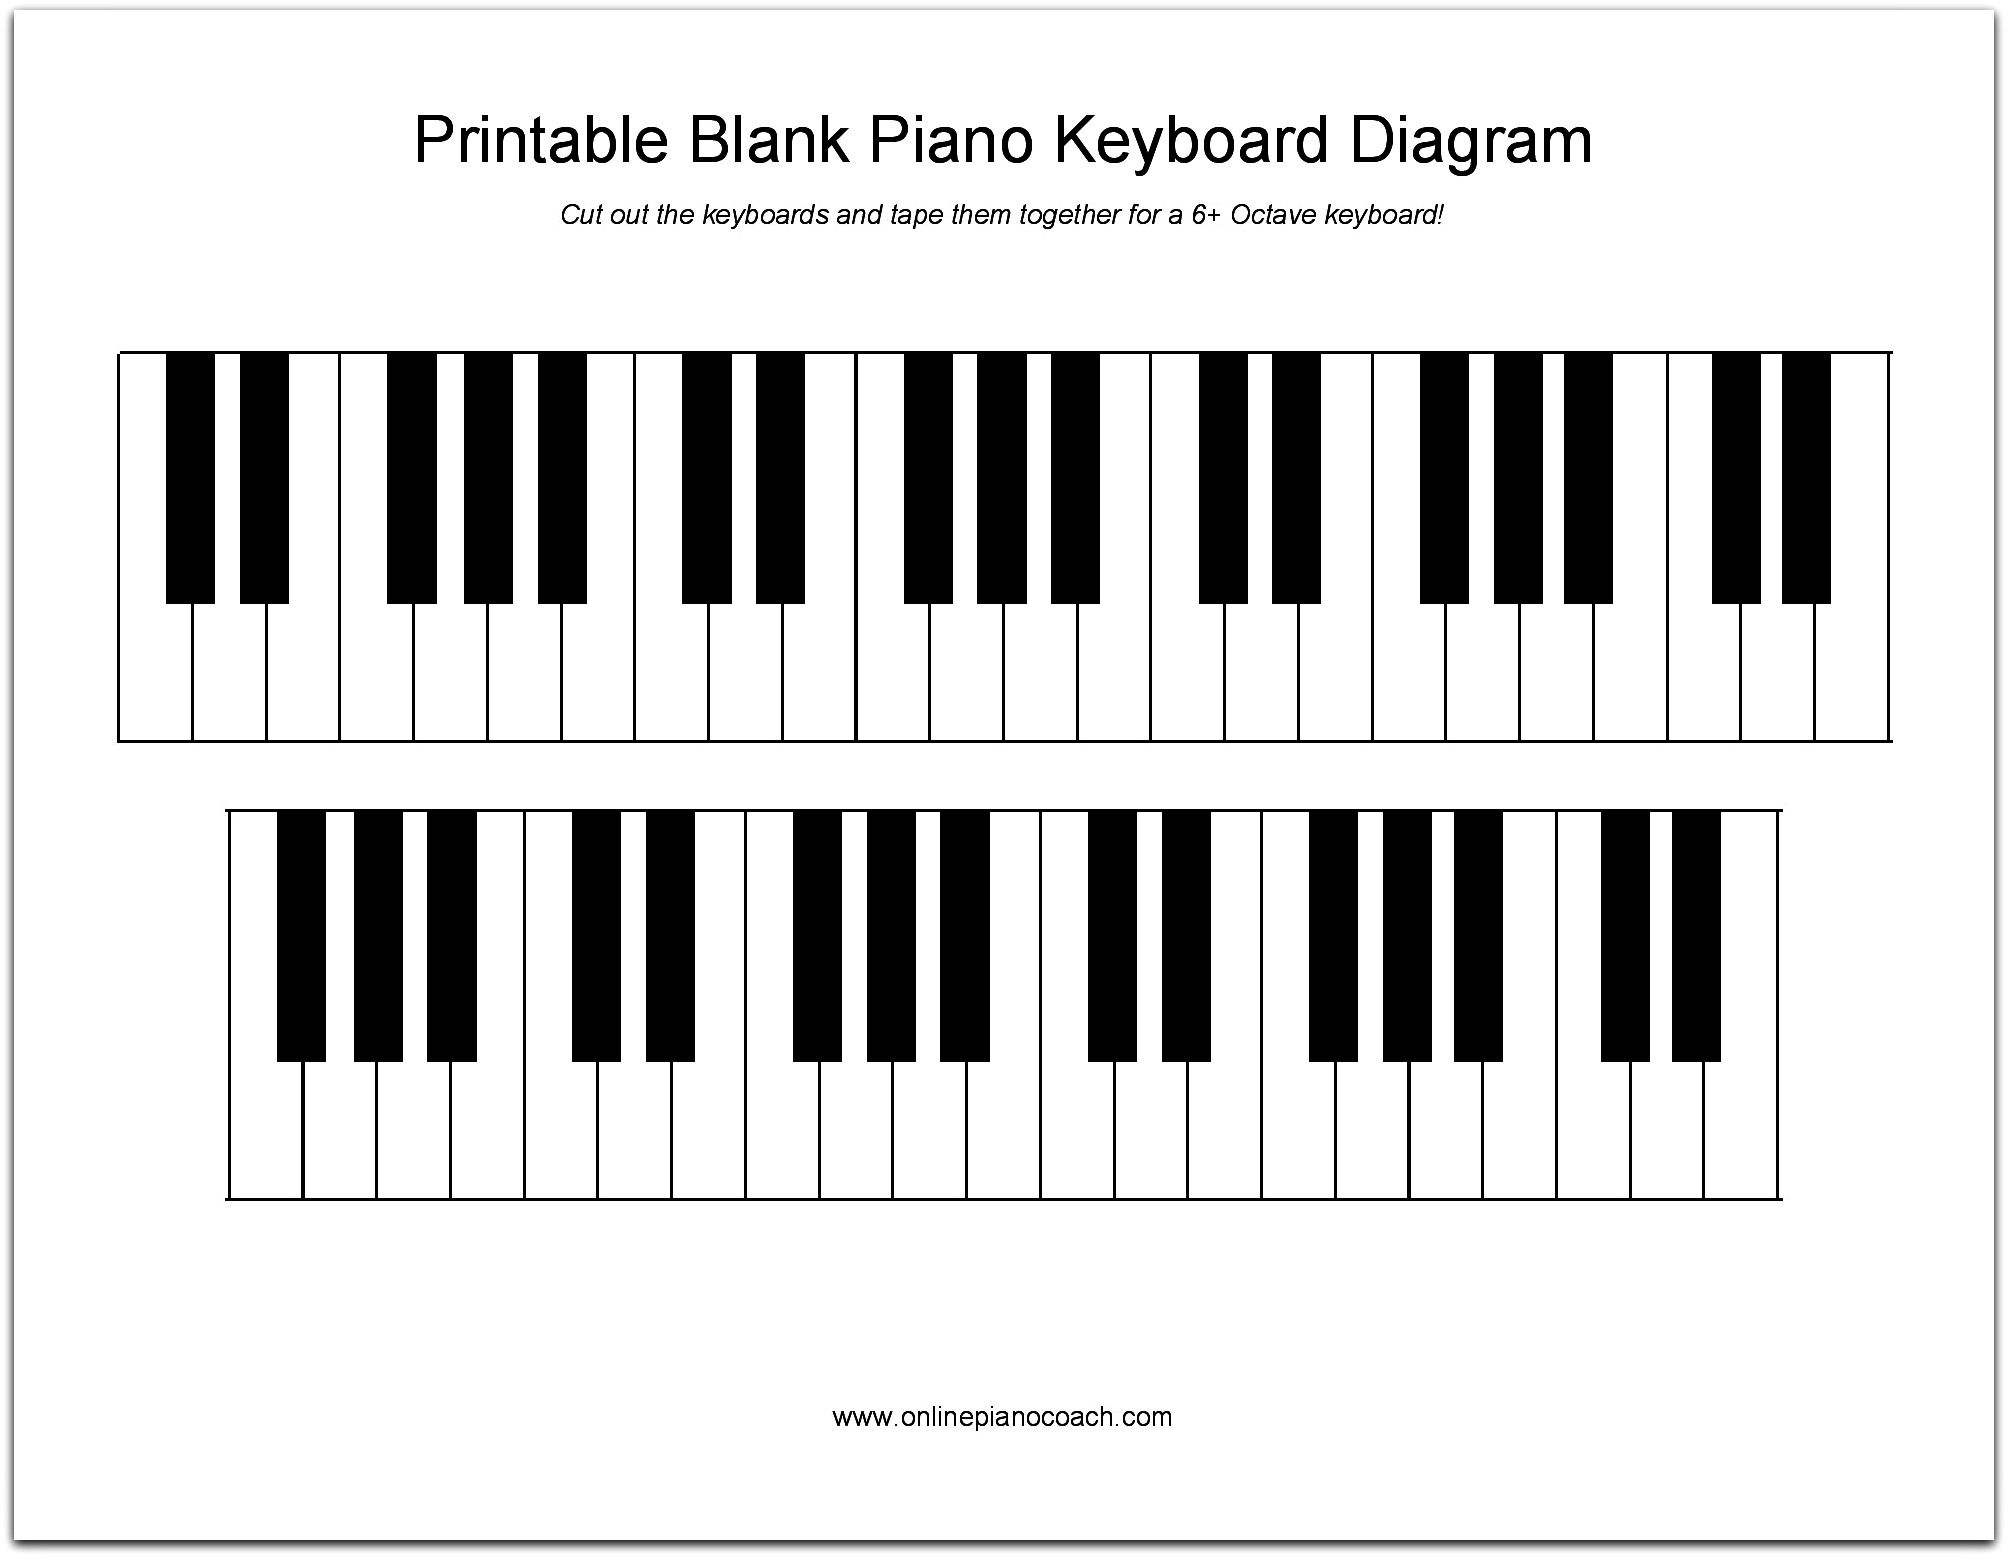 Printable Piano Keyboard Diagram In